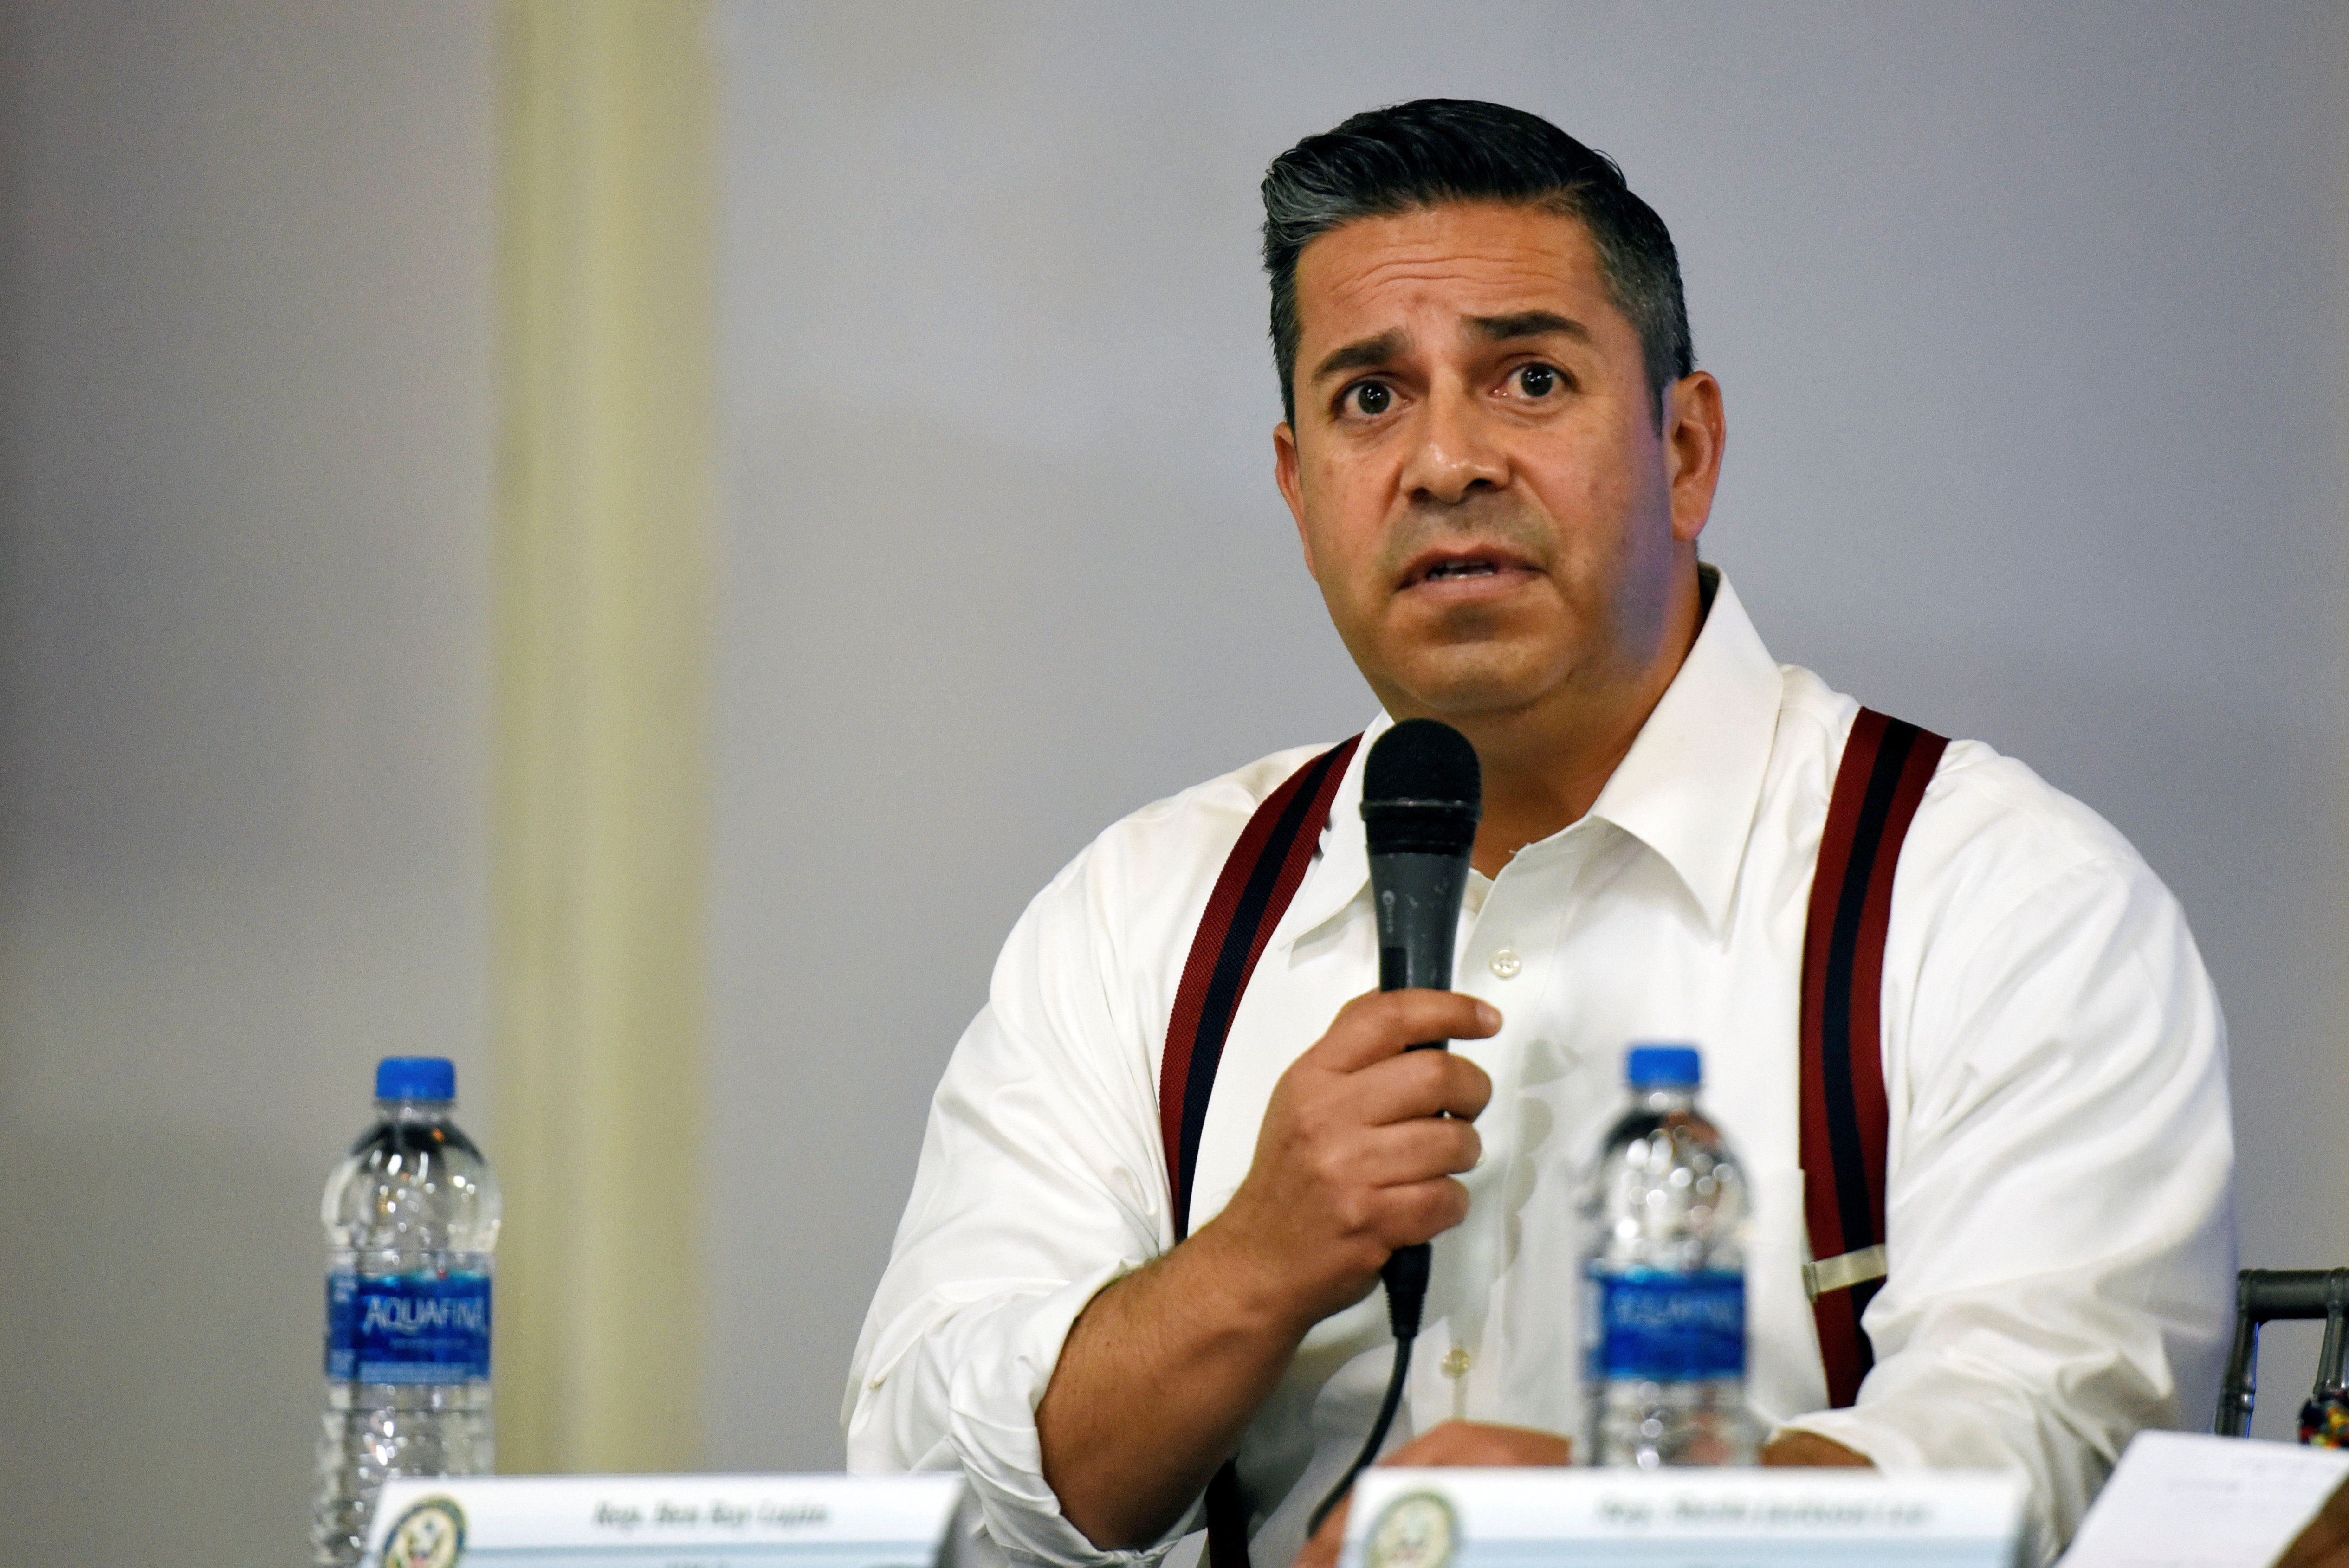 U.S. Representative Ben Ray Lujan speaks about unaccompanied minor shelters during a round table discussion in Brownsville, Texas, U.S. June 18, 2018.  REUTERS/Callaghan O'Hare